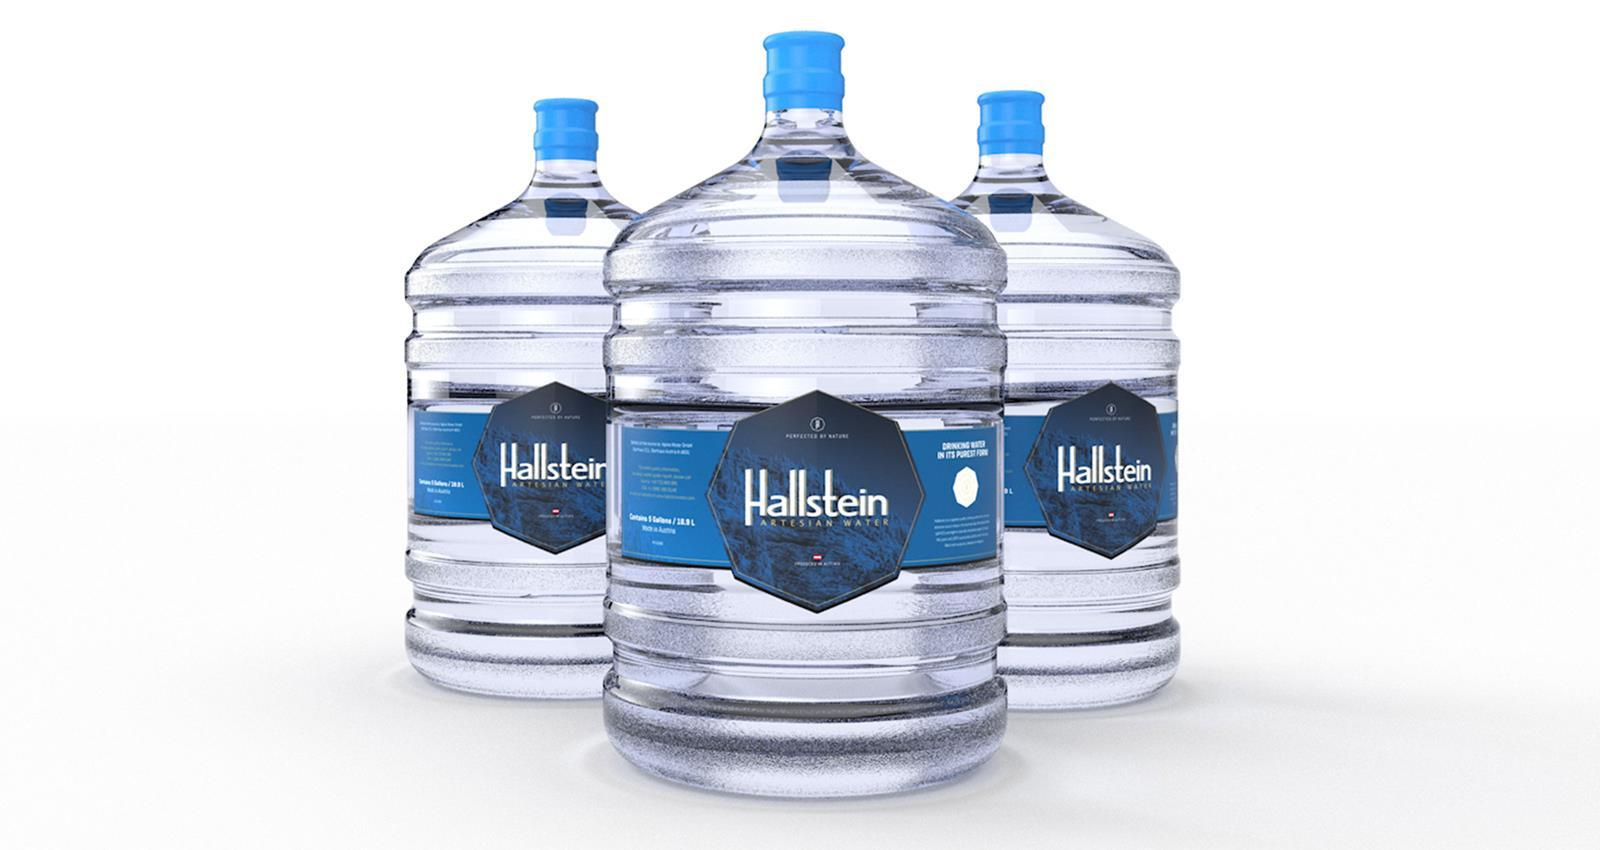 art-of-craft-hallstein-artesian-water-bottles.jpg